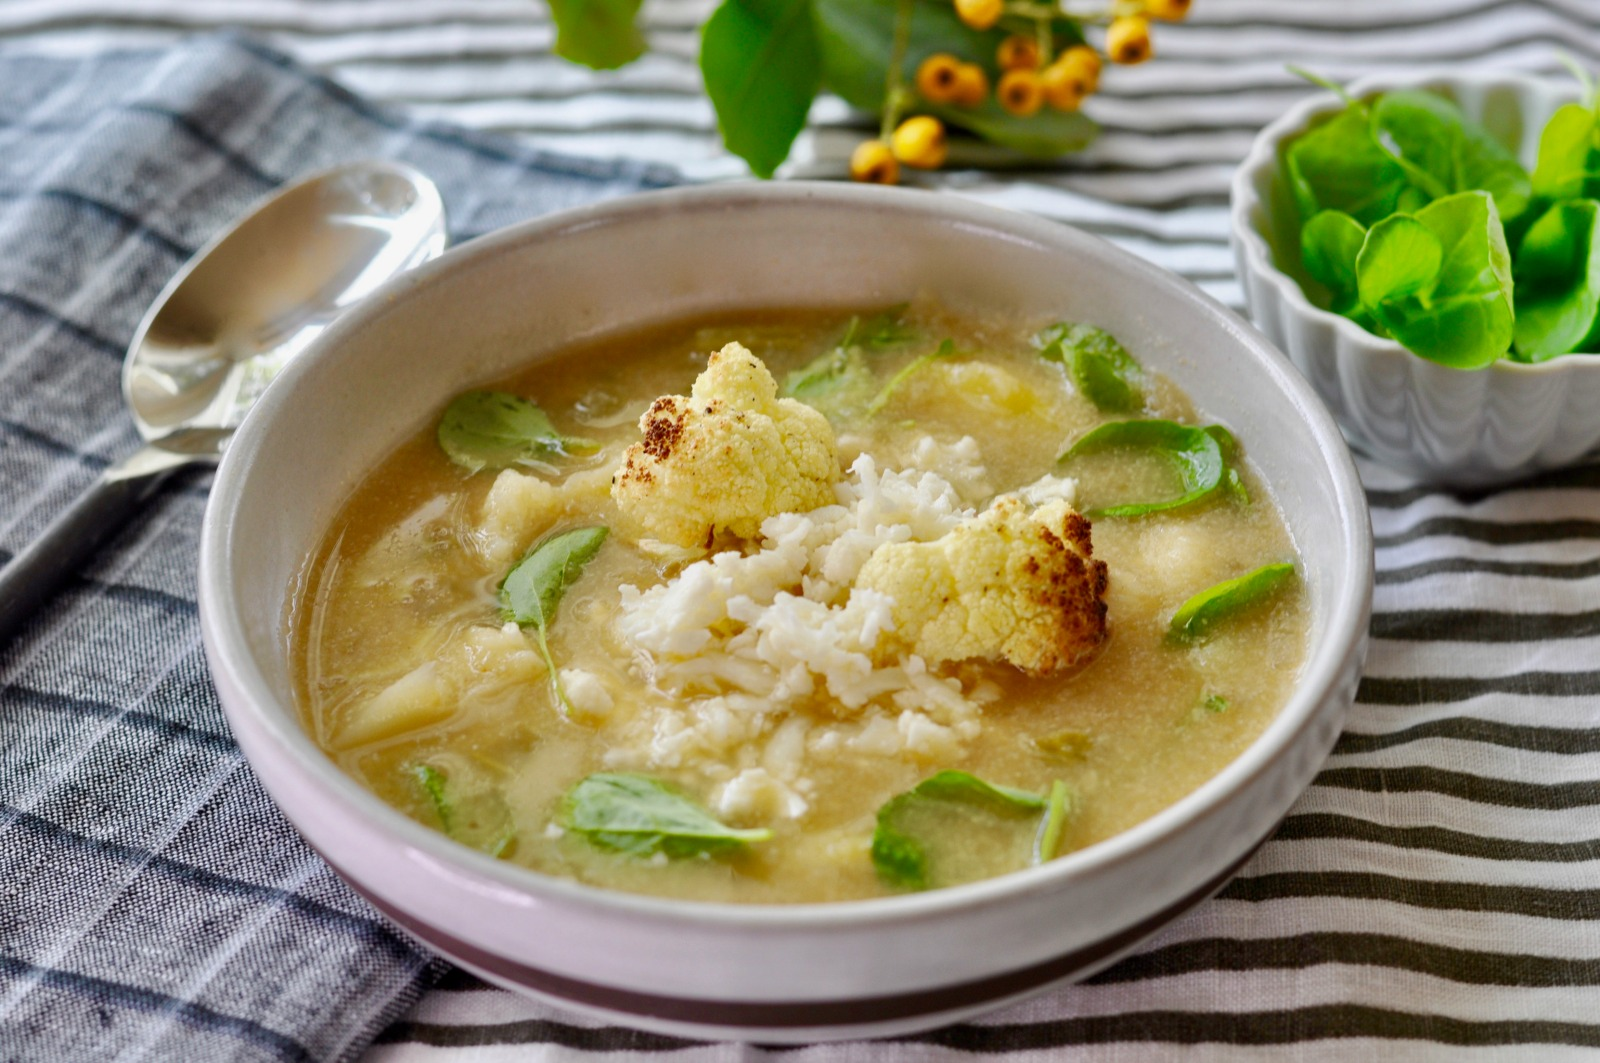 This creamy vegan cauliflower stew with parsnips, potatoes and greens goes to the next level of deliciousness when it is topped with one of my all time favorite flavor bombs - pickled cauliflower. (#vegan) ordinaryvegan.net